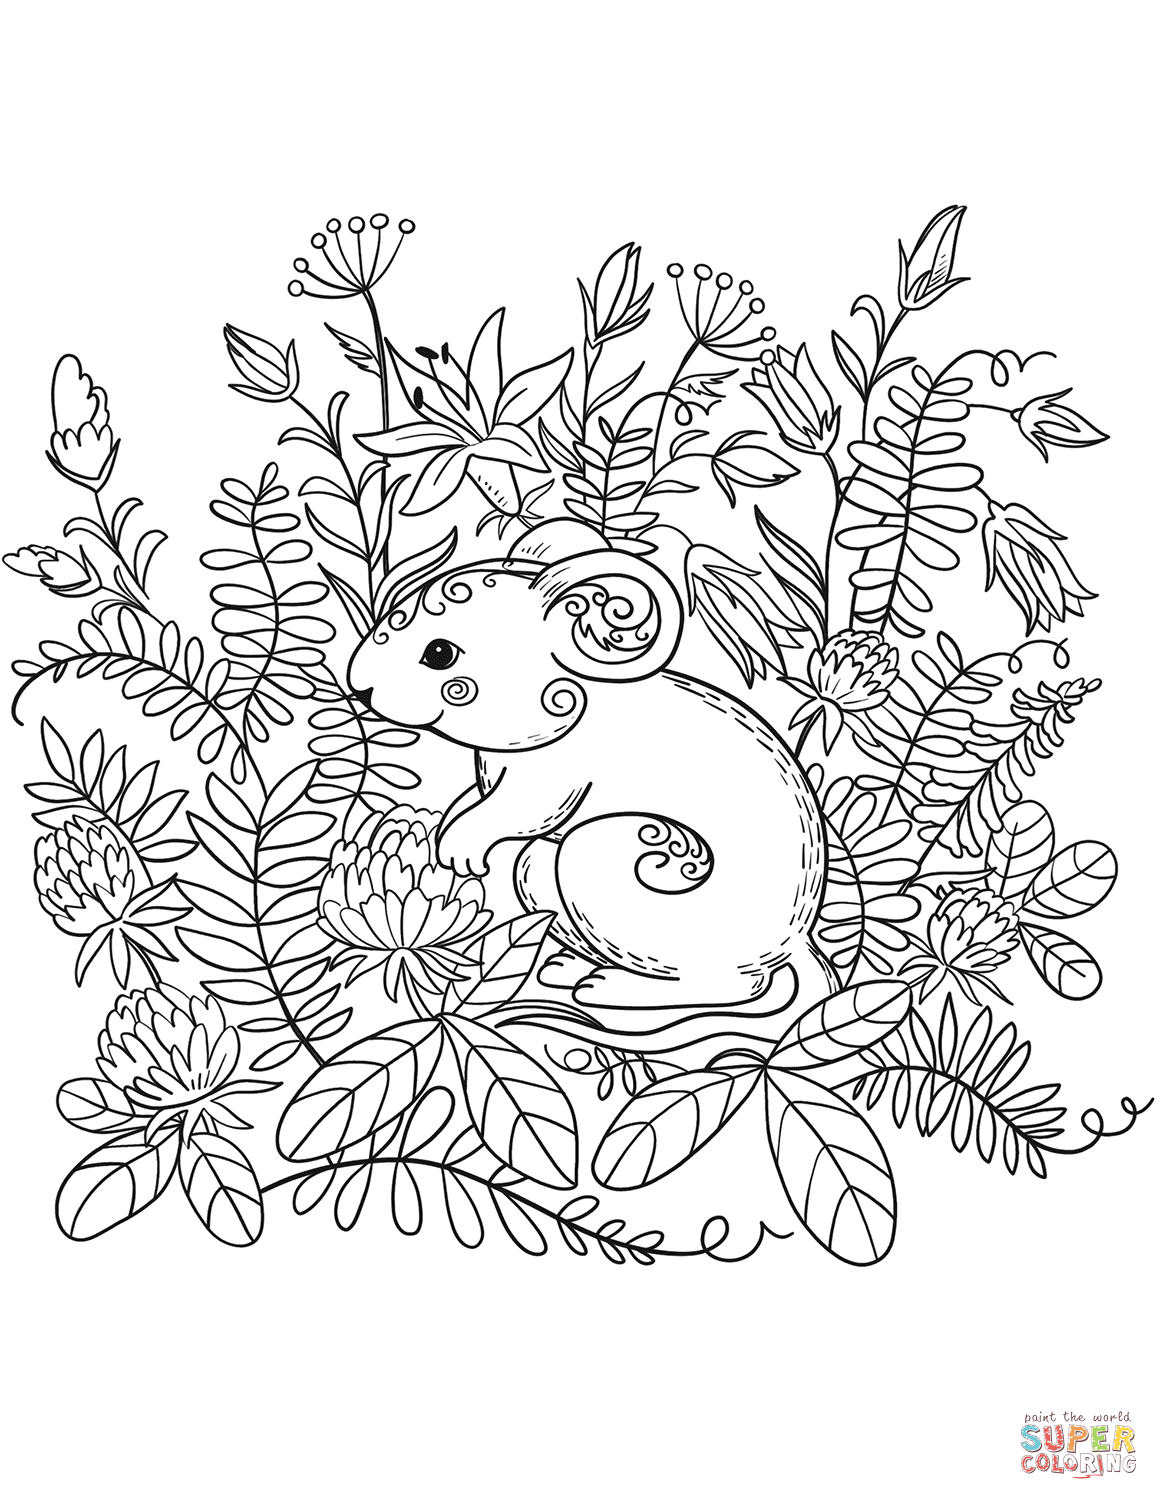 Image result for cute mice to color Animal coloring